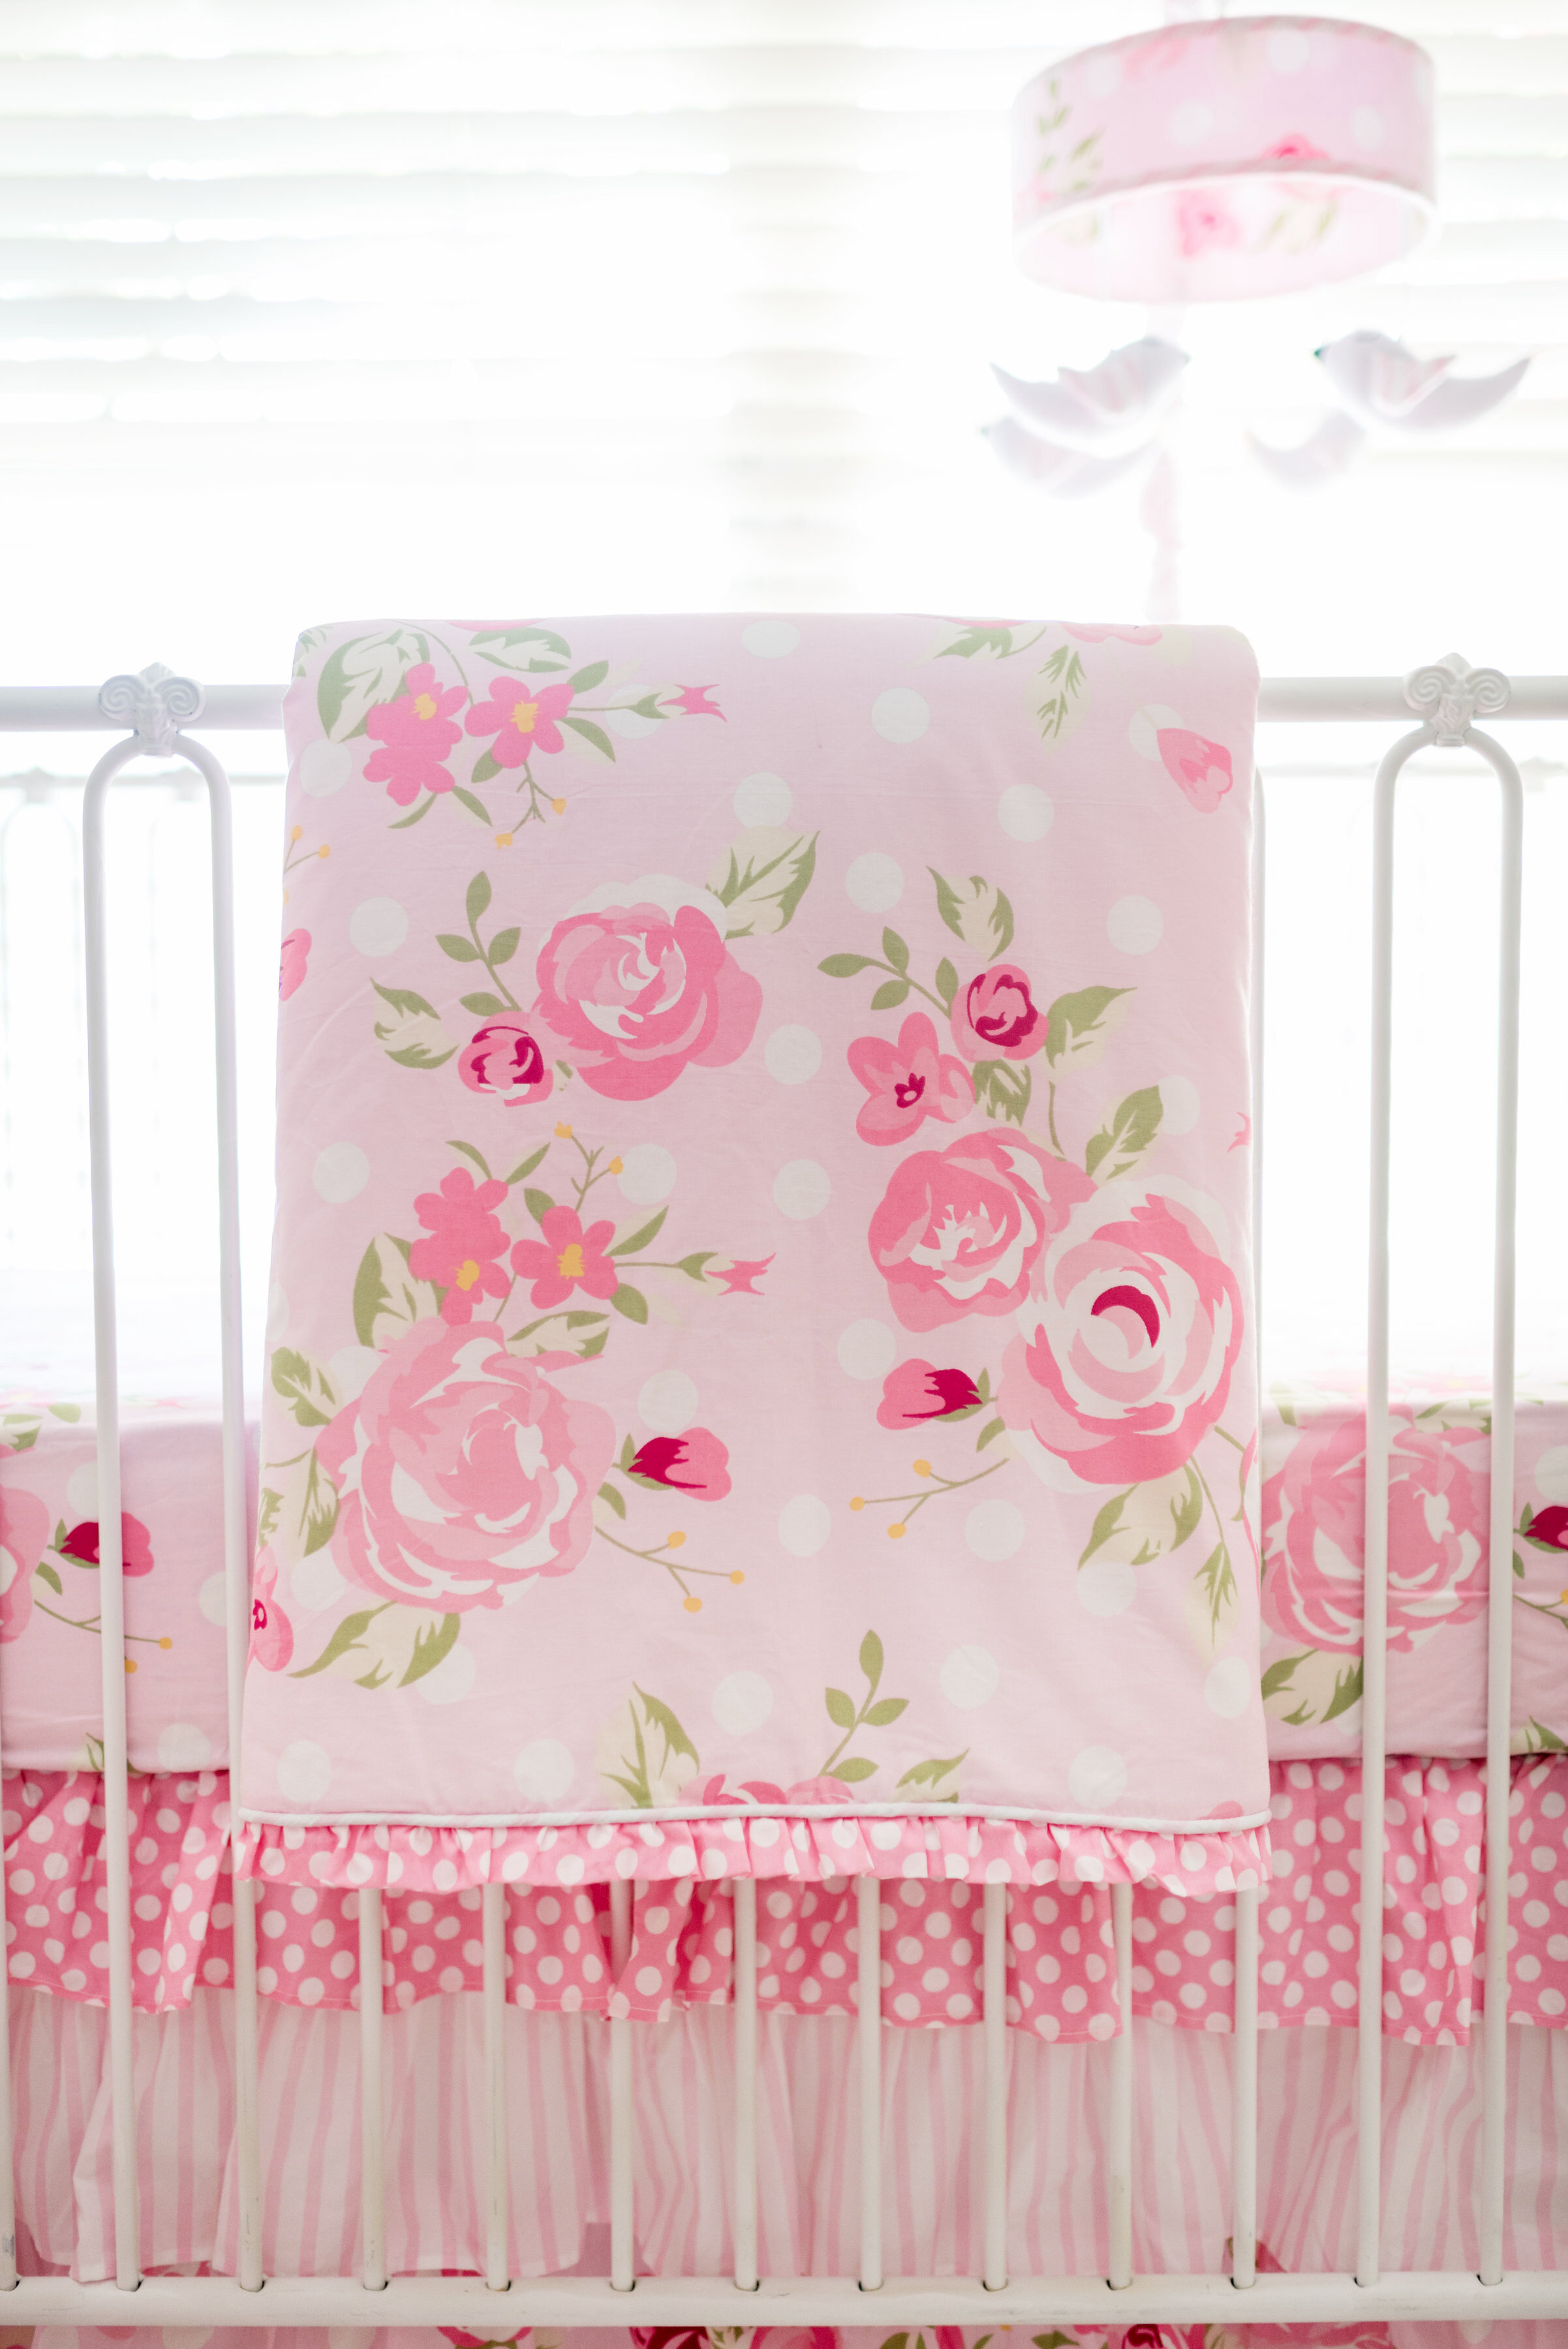 journey set whimsy into a little floral bsps on piece magical crib includes patchwork dreamlike cribs takes forest wwh woodland four quilt girl your the bedding